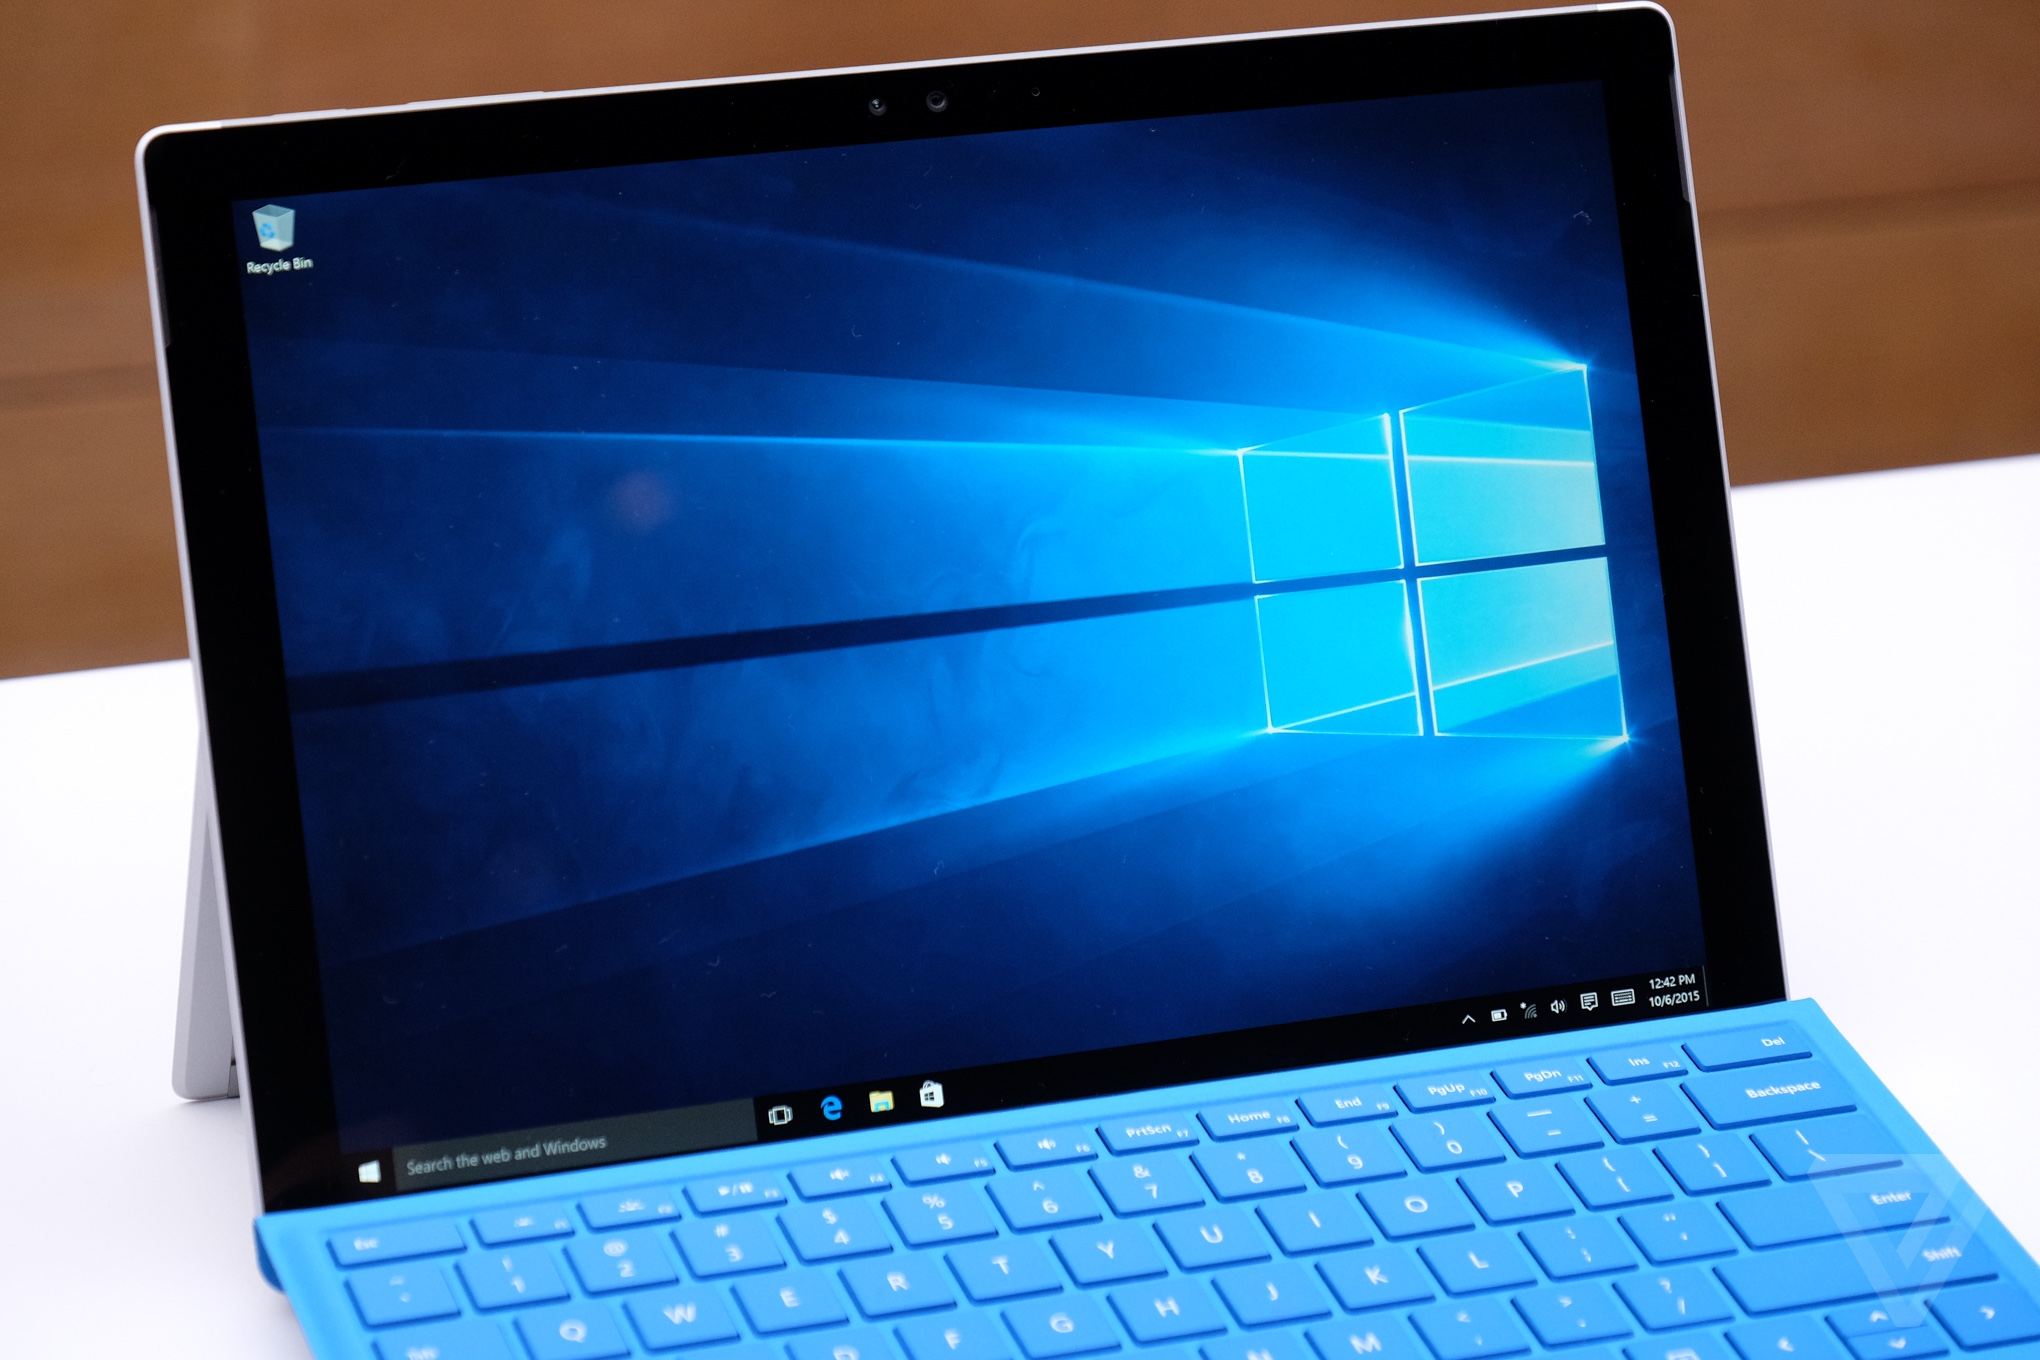 Microsoft Surface Pro 4 hands-on photos